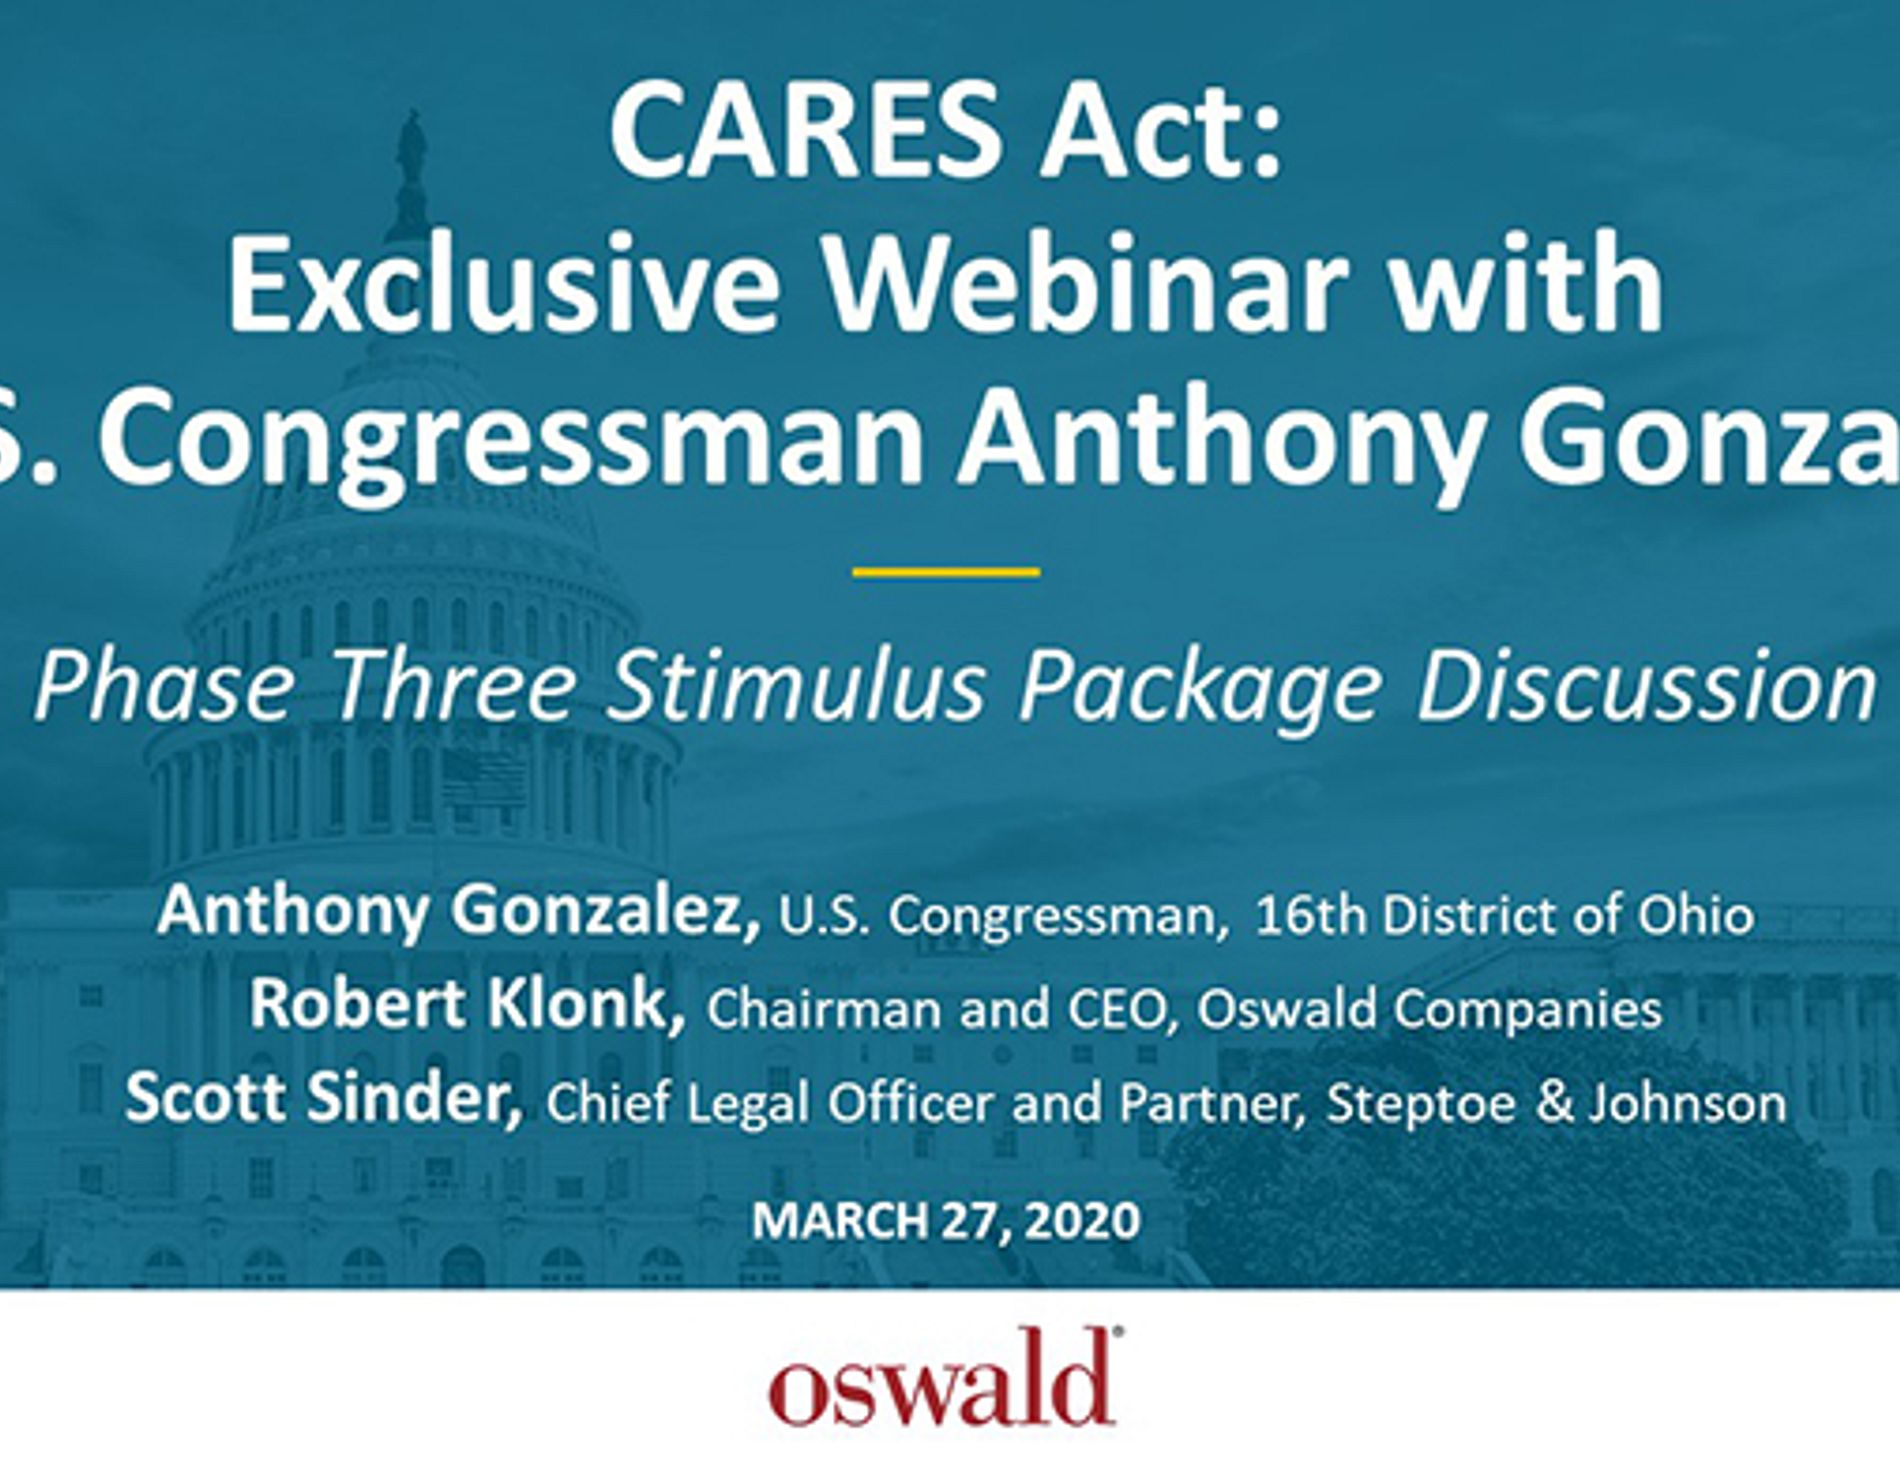 CARES Act Stimulus Phase 3 Webinar